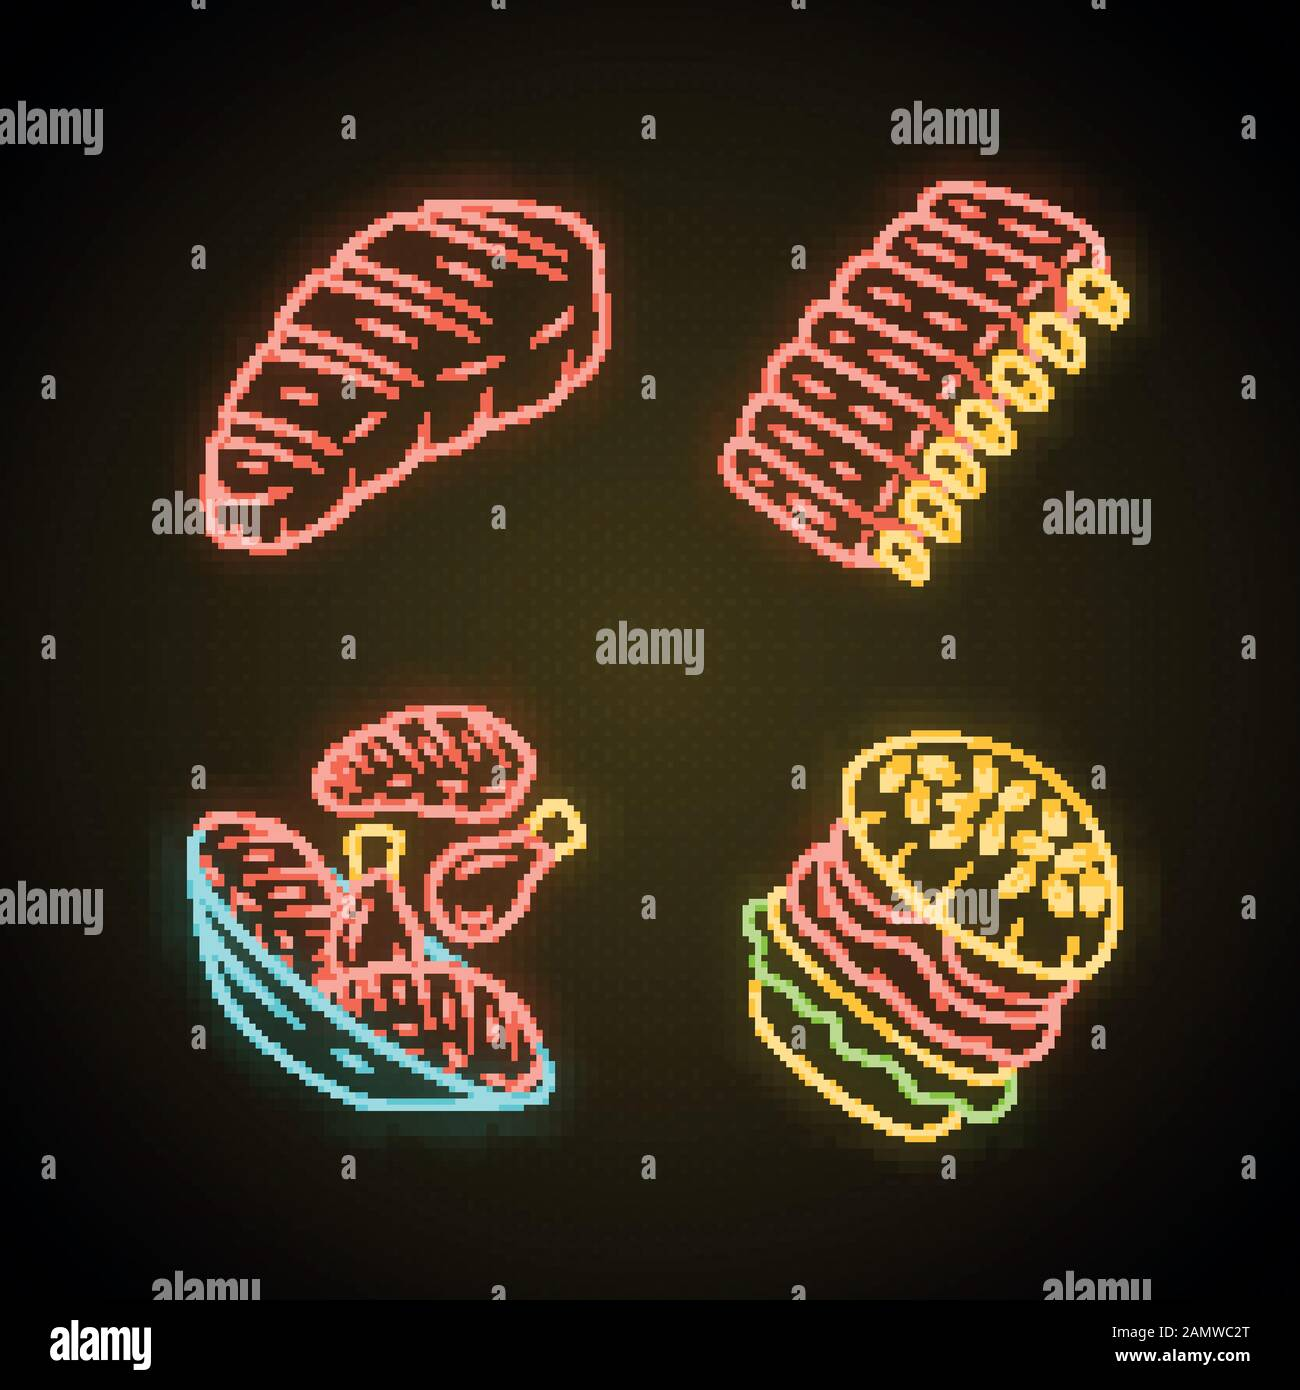 Meat Dishes Neon Light Icons Set Steak Beef Ribs Chicken Legs Burger Fast Food Butcher Shop Product Restaurant Grill Bar Steakhouse Menu Glo Stock Vector Image Art Alamy